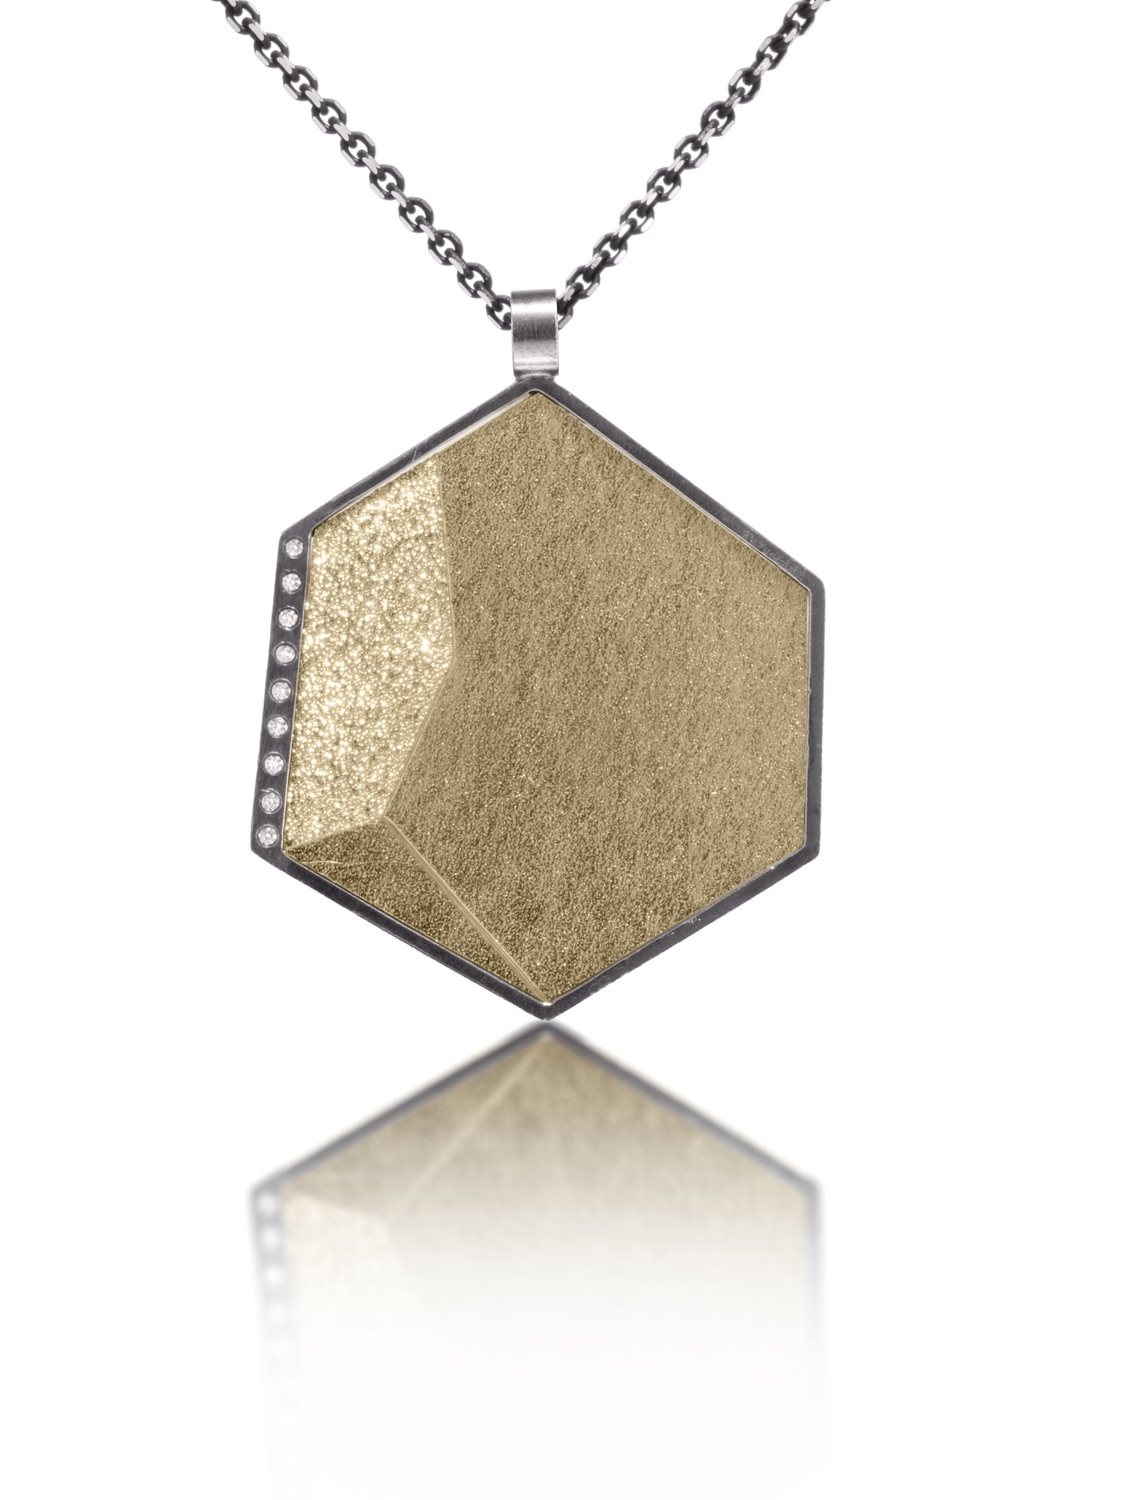 The Jewel - Elizabeth Garvin - Lookbook - Gold and Silver Hexagon Necklace